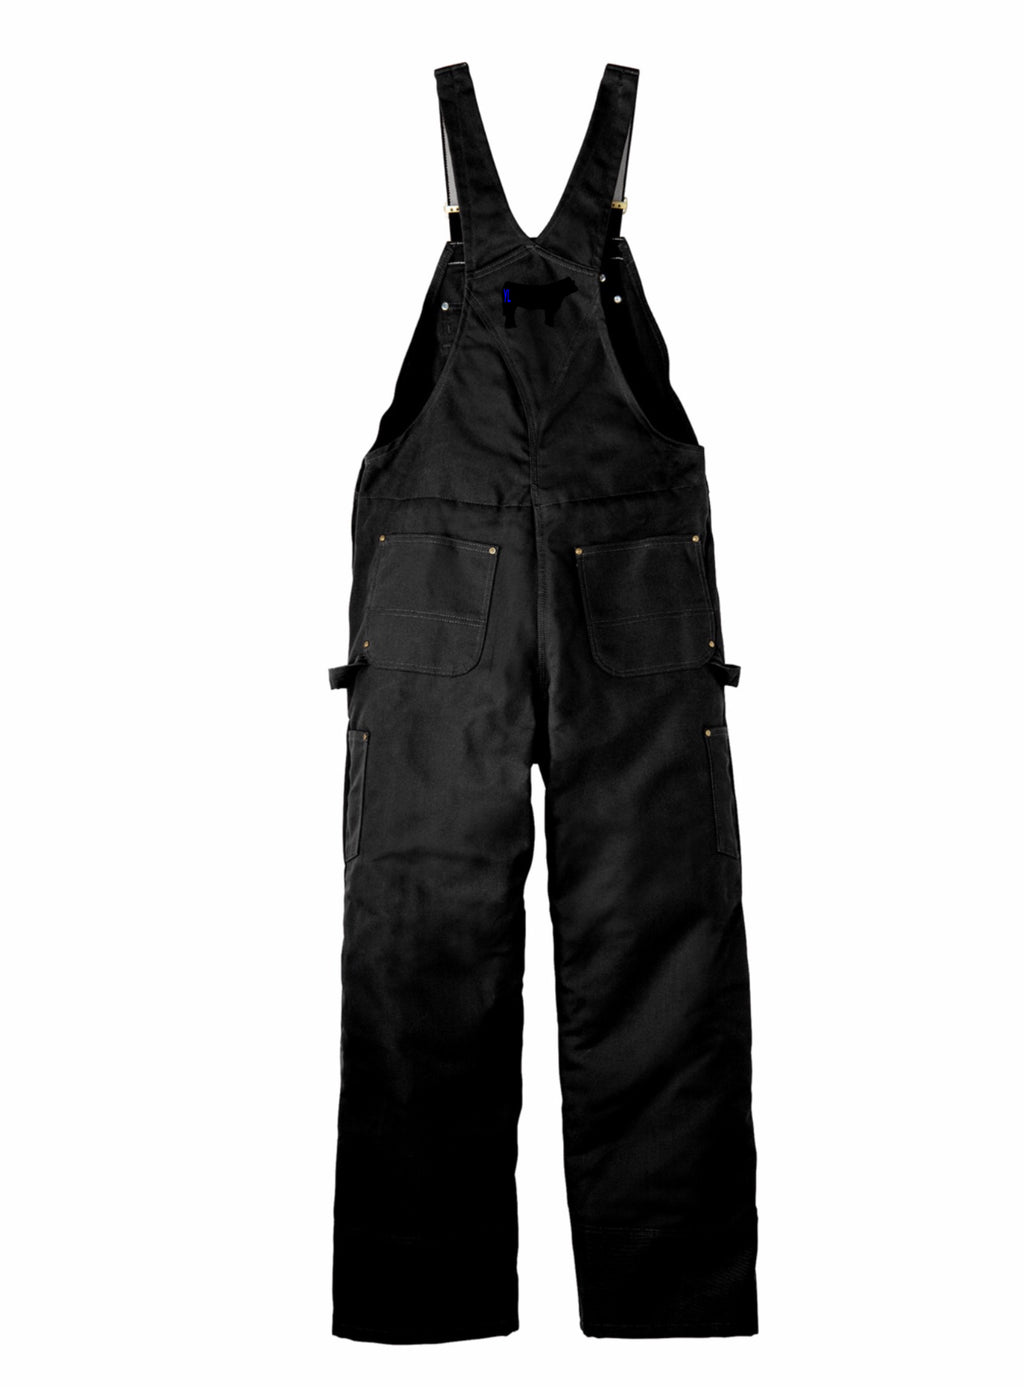 Branded Cow Carhartt Duck Quilt-Lined Zip-To-Thigh Bib Overalls